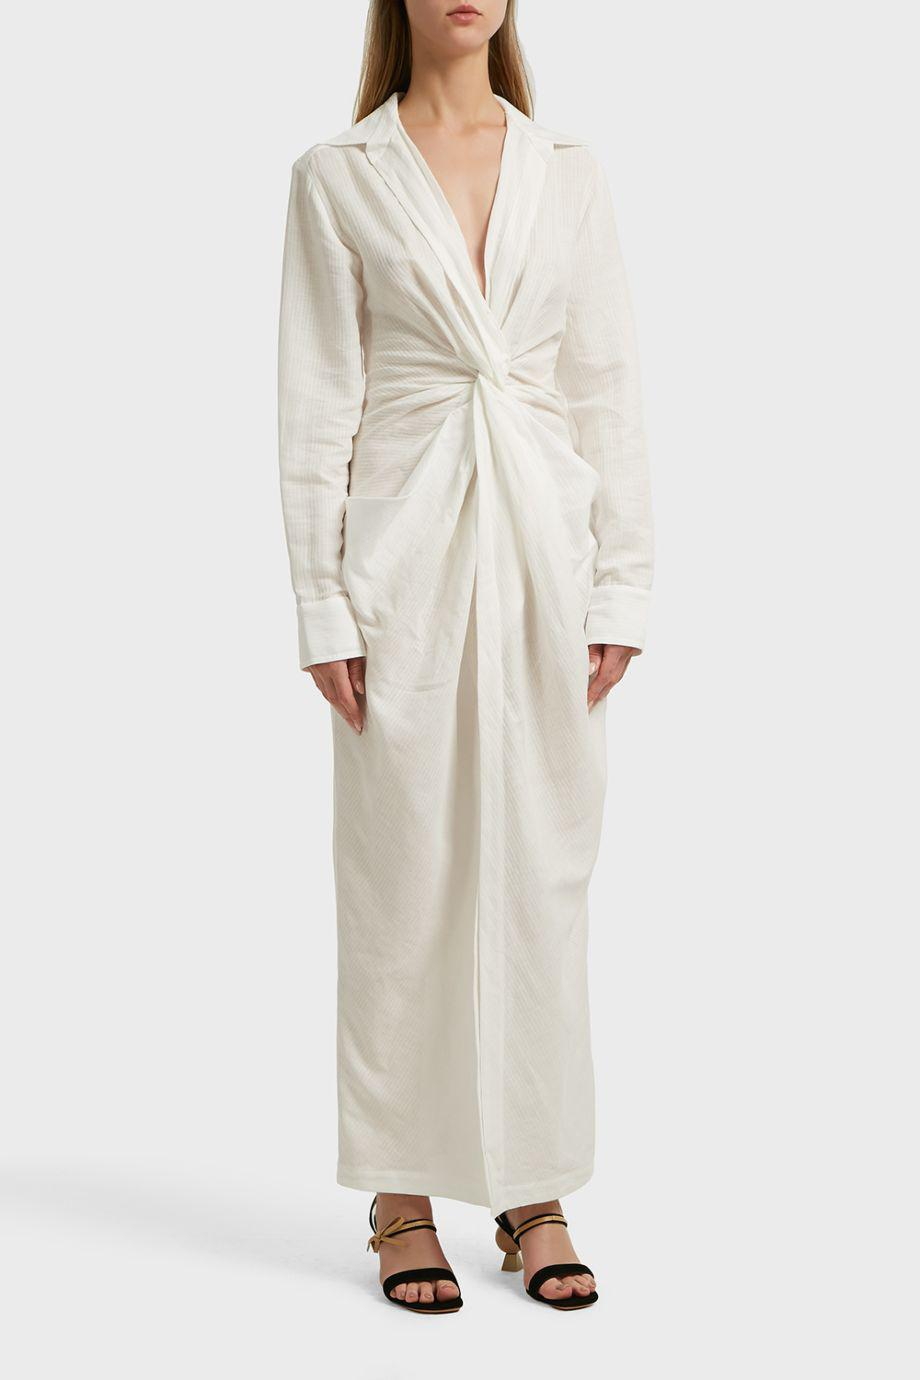 51249f2ee5 Jacquemus Bolso Linen And Cotton-blend Midi Dress